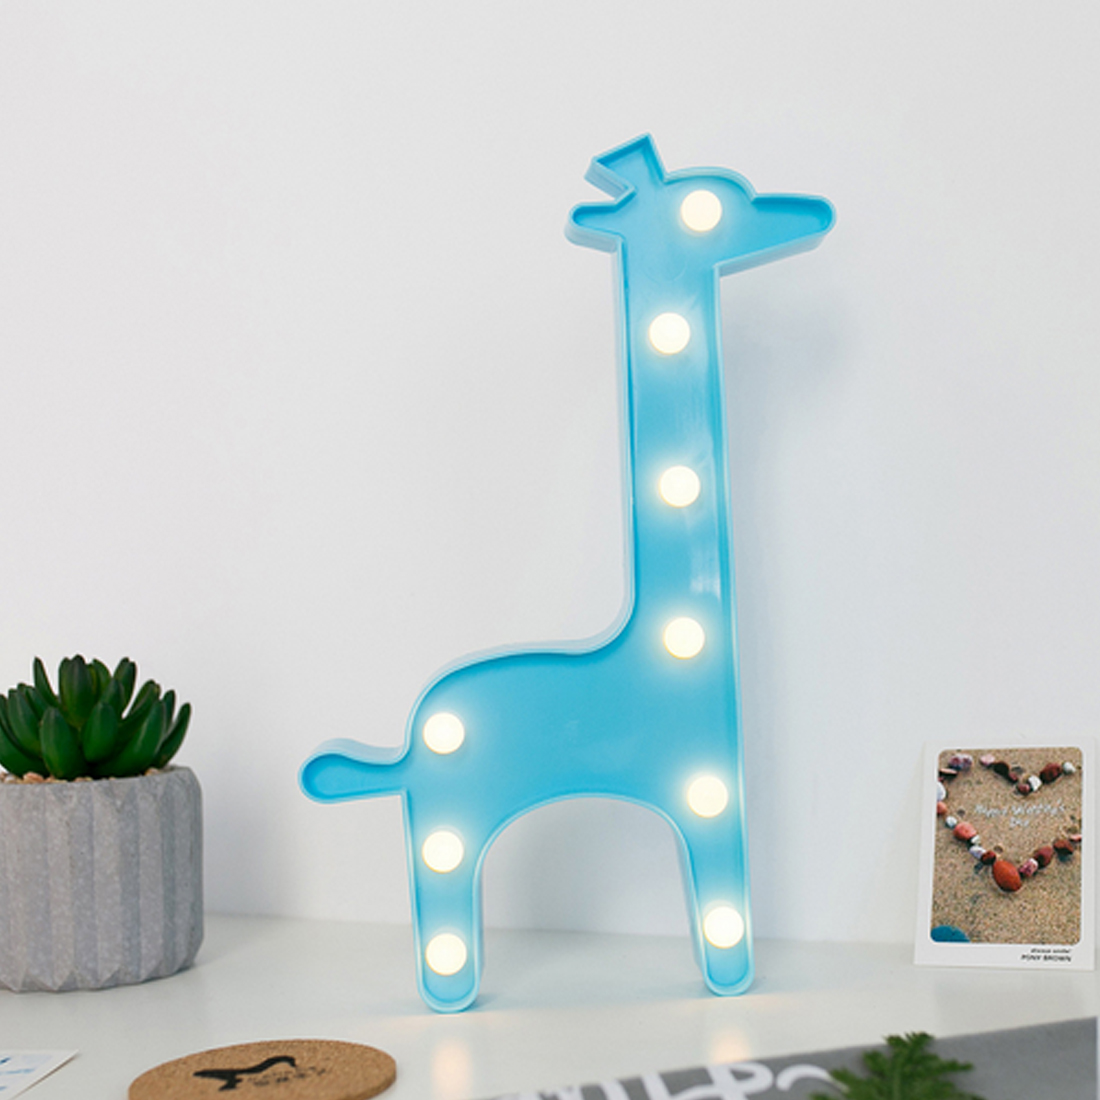 3D LED Night Lights Cartoon Giraffe Christmas Tree Coconut Tree Nightlight Desk Night Lamp For Baby Kids Bedroom Decoration3D LED Night Lights Cartoon Giraffe Christmas Tree Coconut Tree Nightlight Desk Night Lamp For Baby Kids Bedroom Decoration